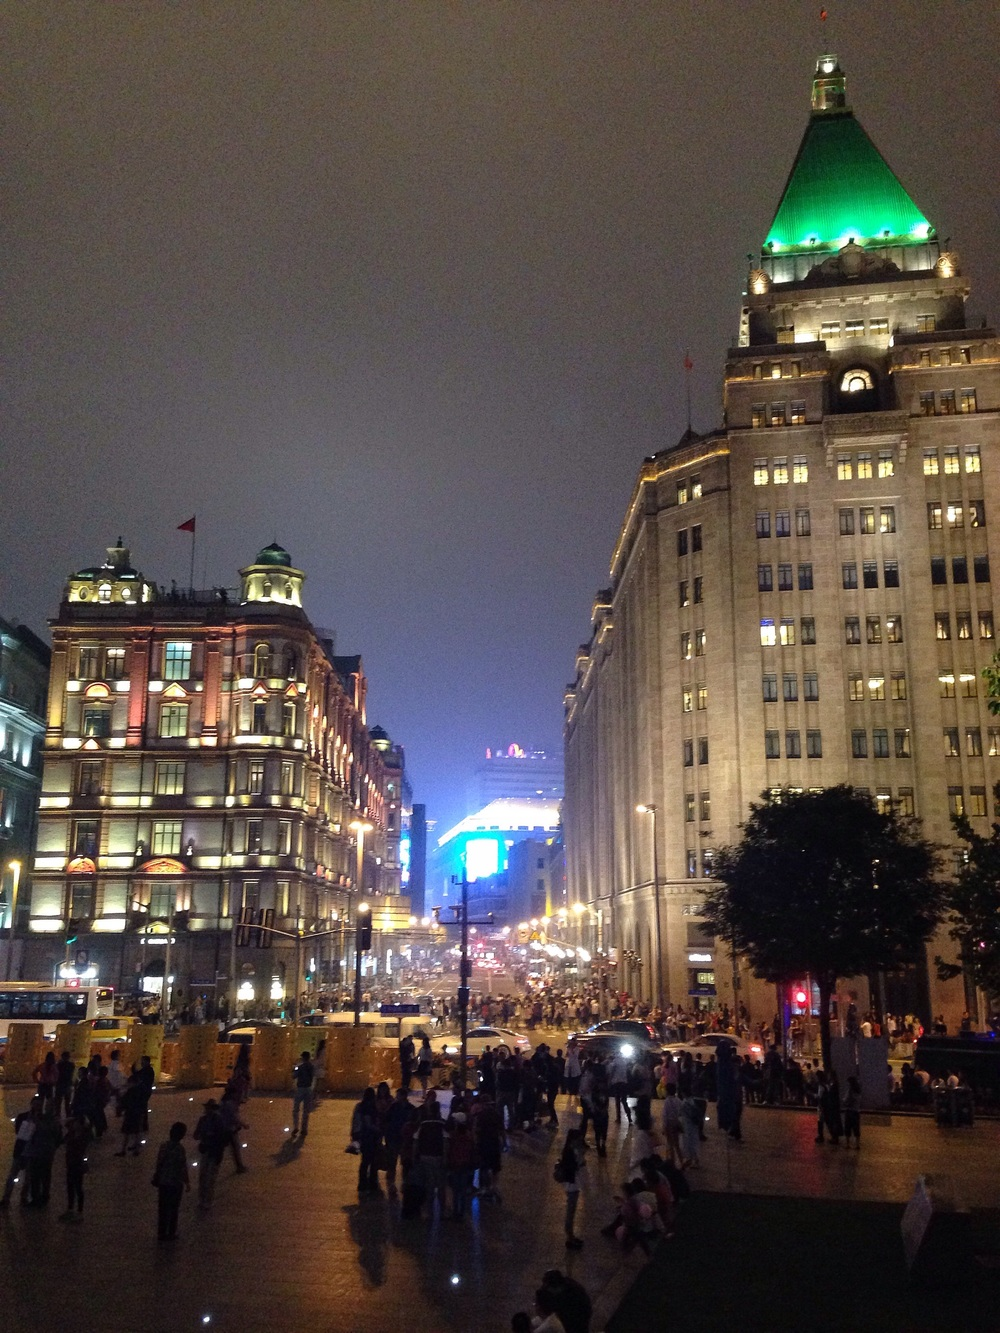 East Nanjing Road from The Bund at night.